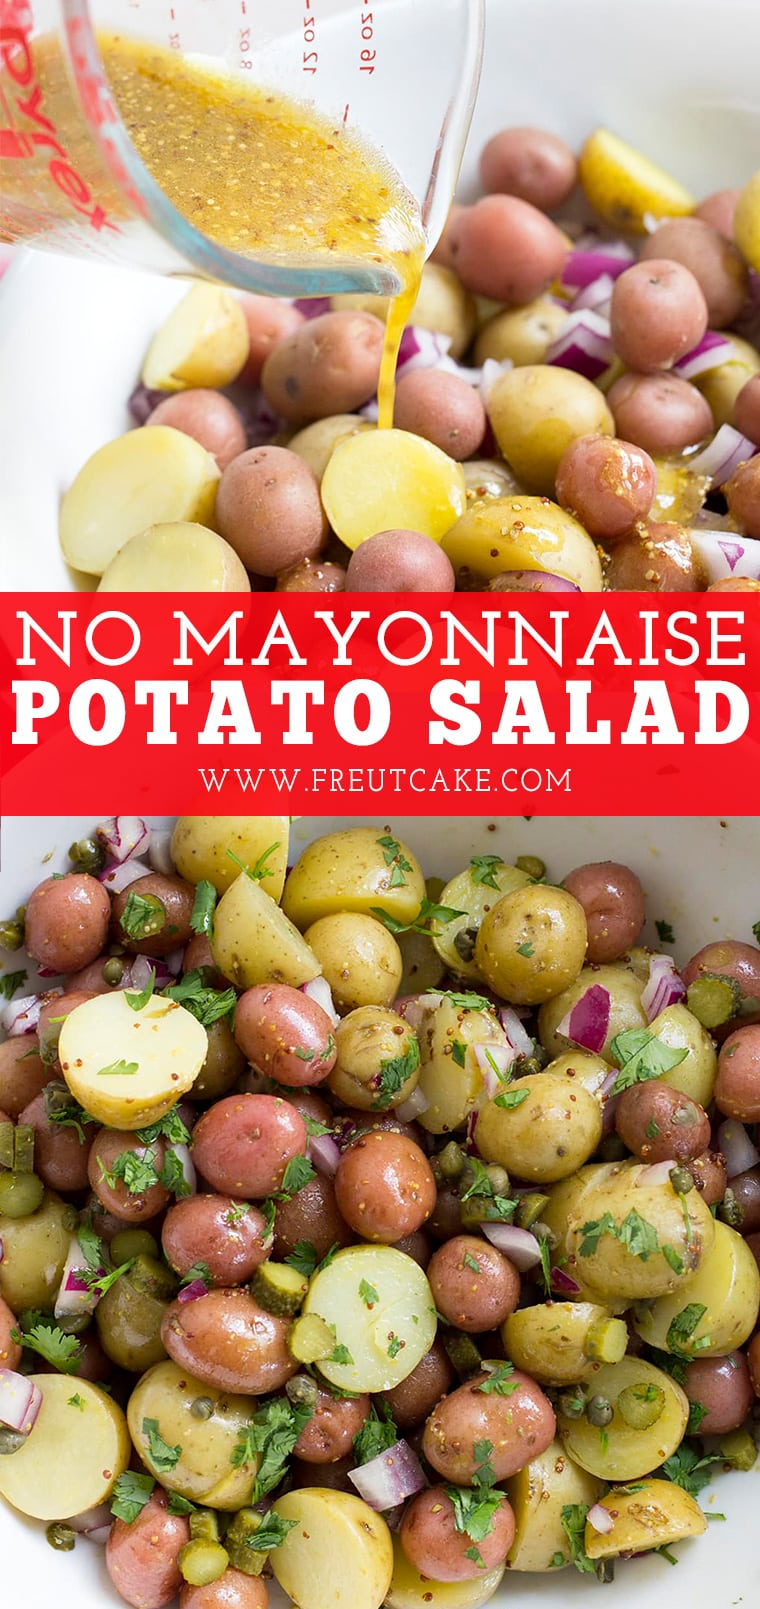 No Mayonnaise Potato Salad